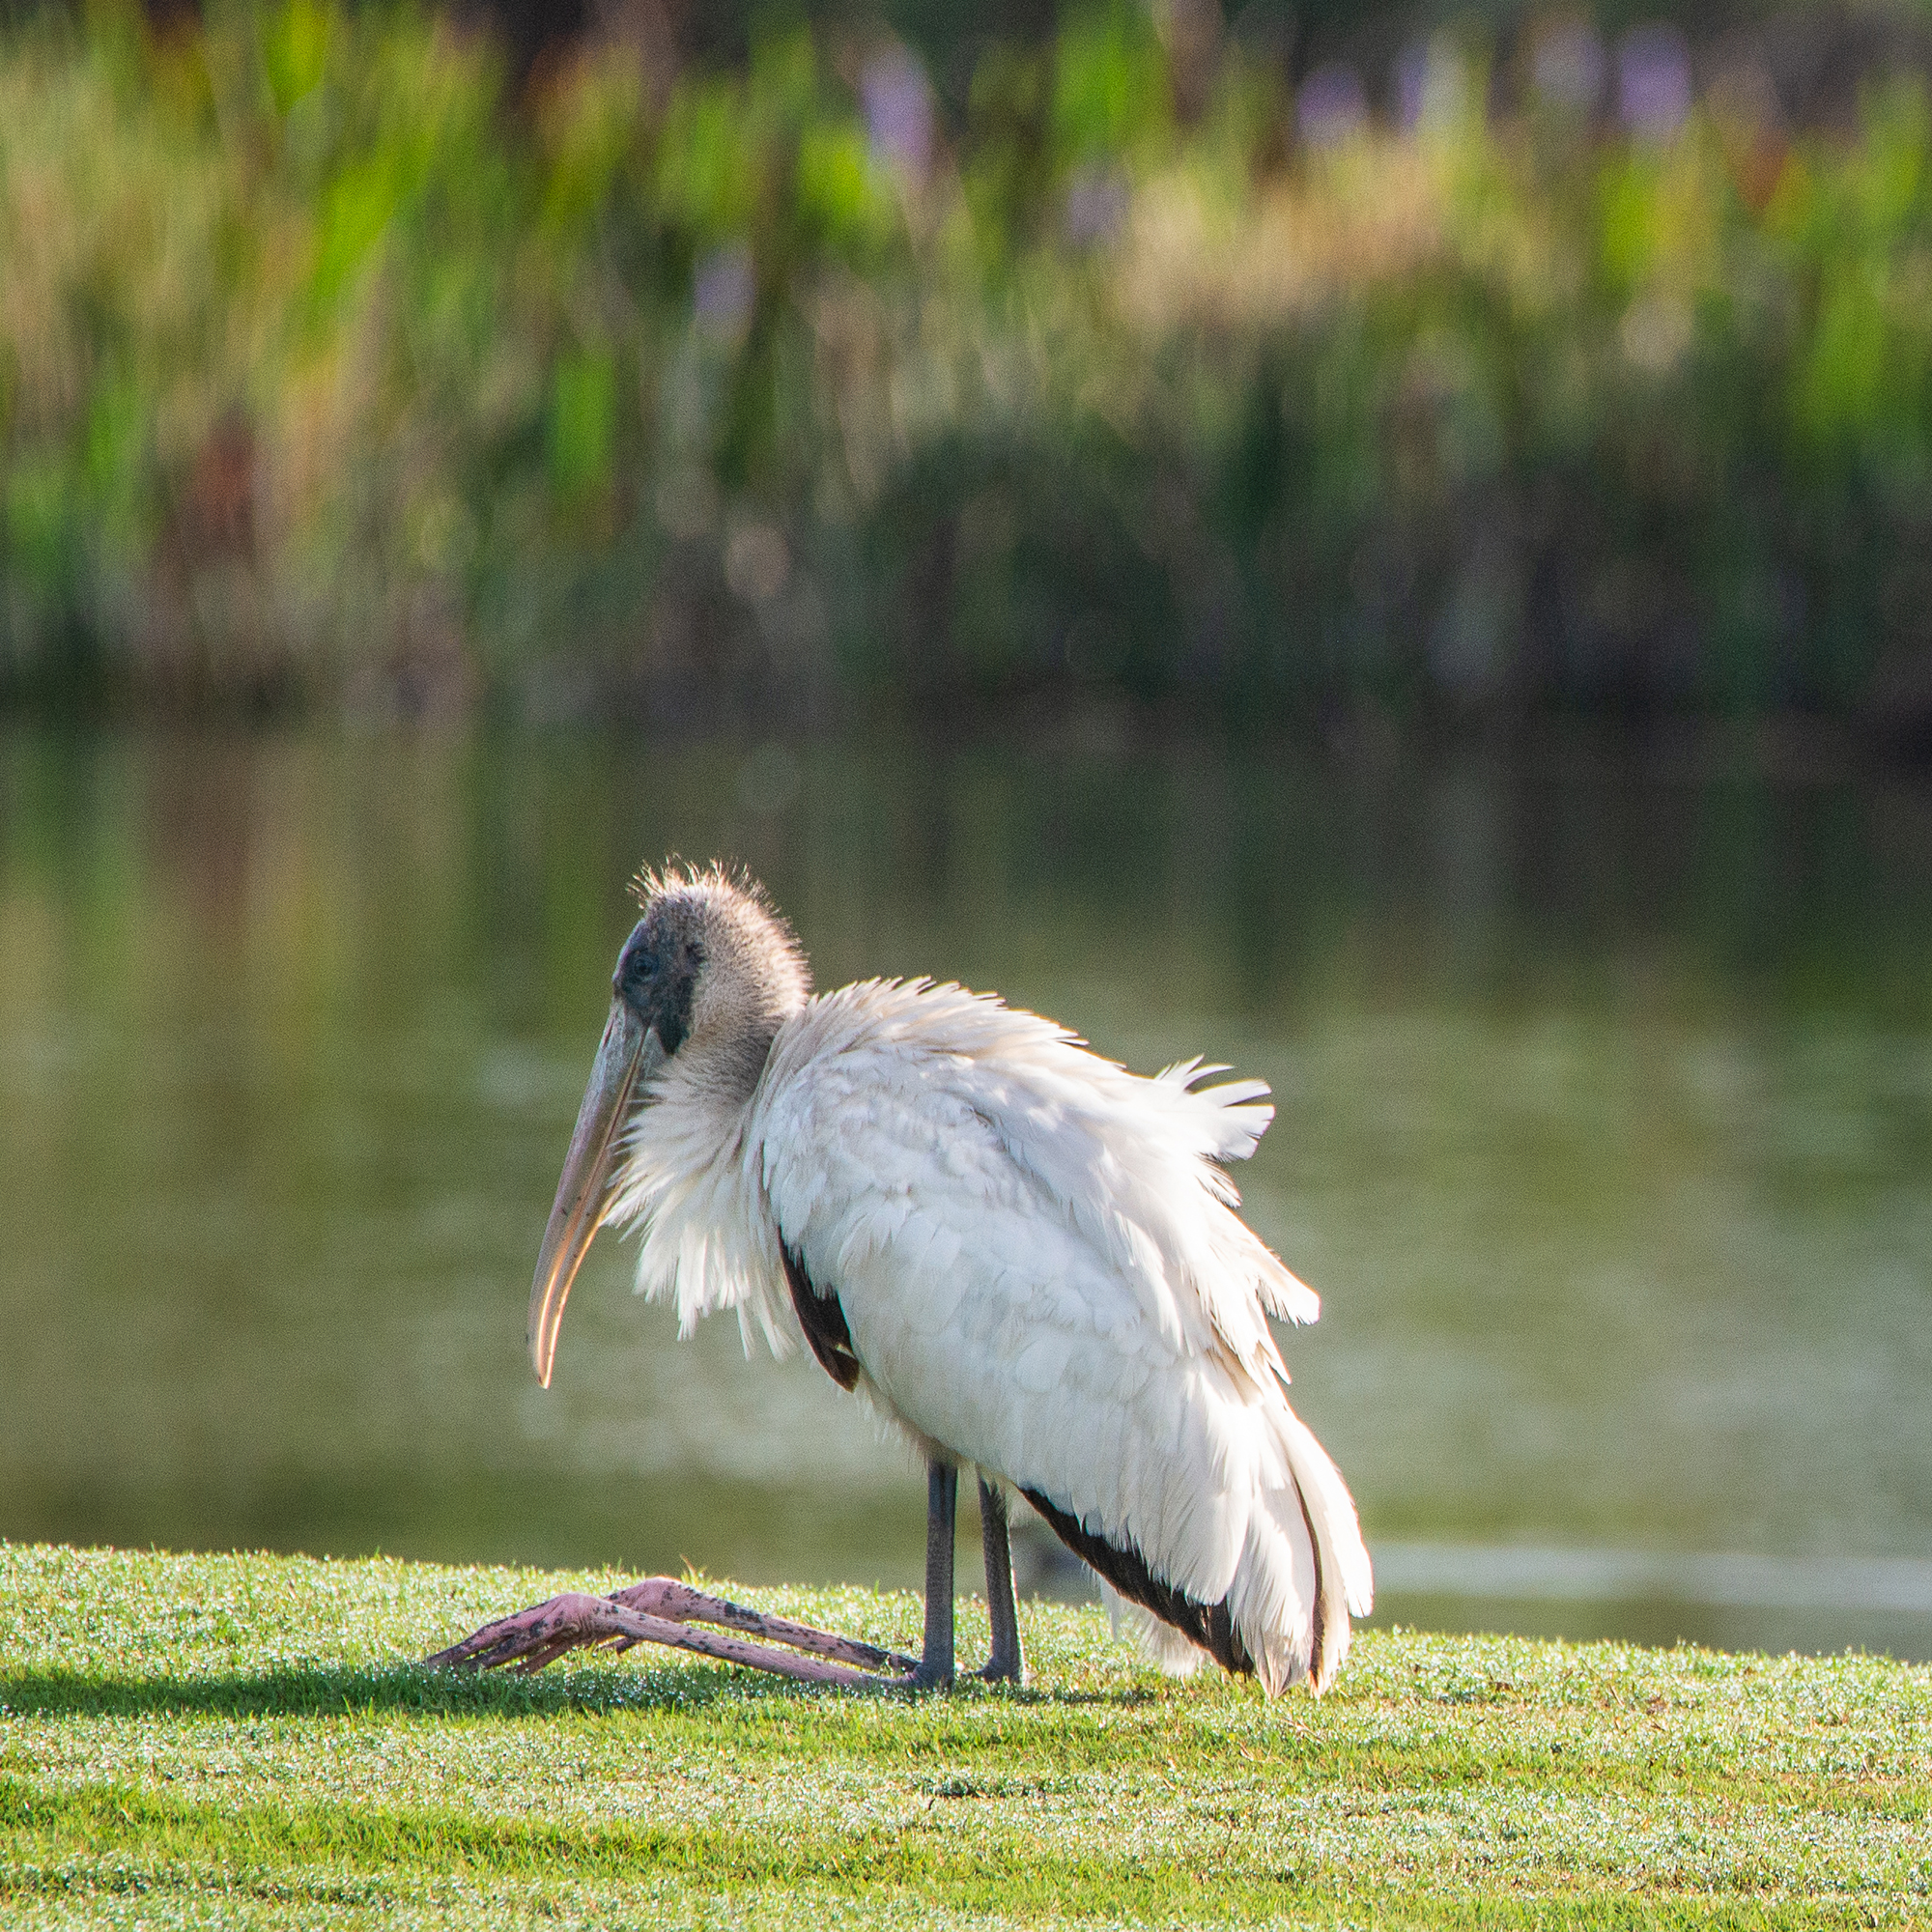 #woodstork, #bird, #threatened, #threatenedspecies, #nesting, #preening, #florida, #golfcourse, #naples